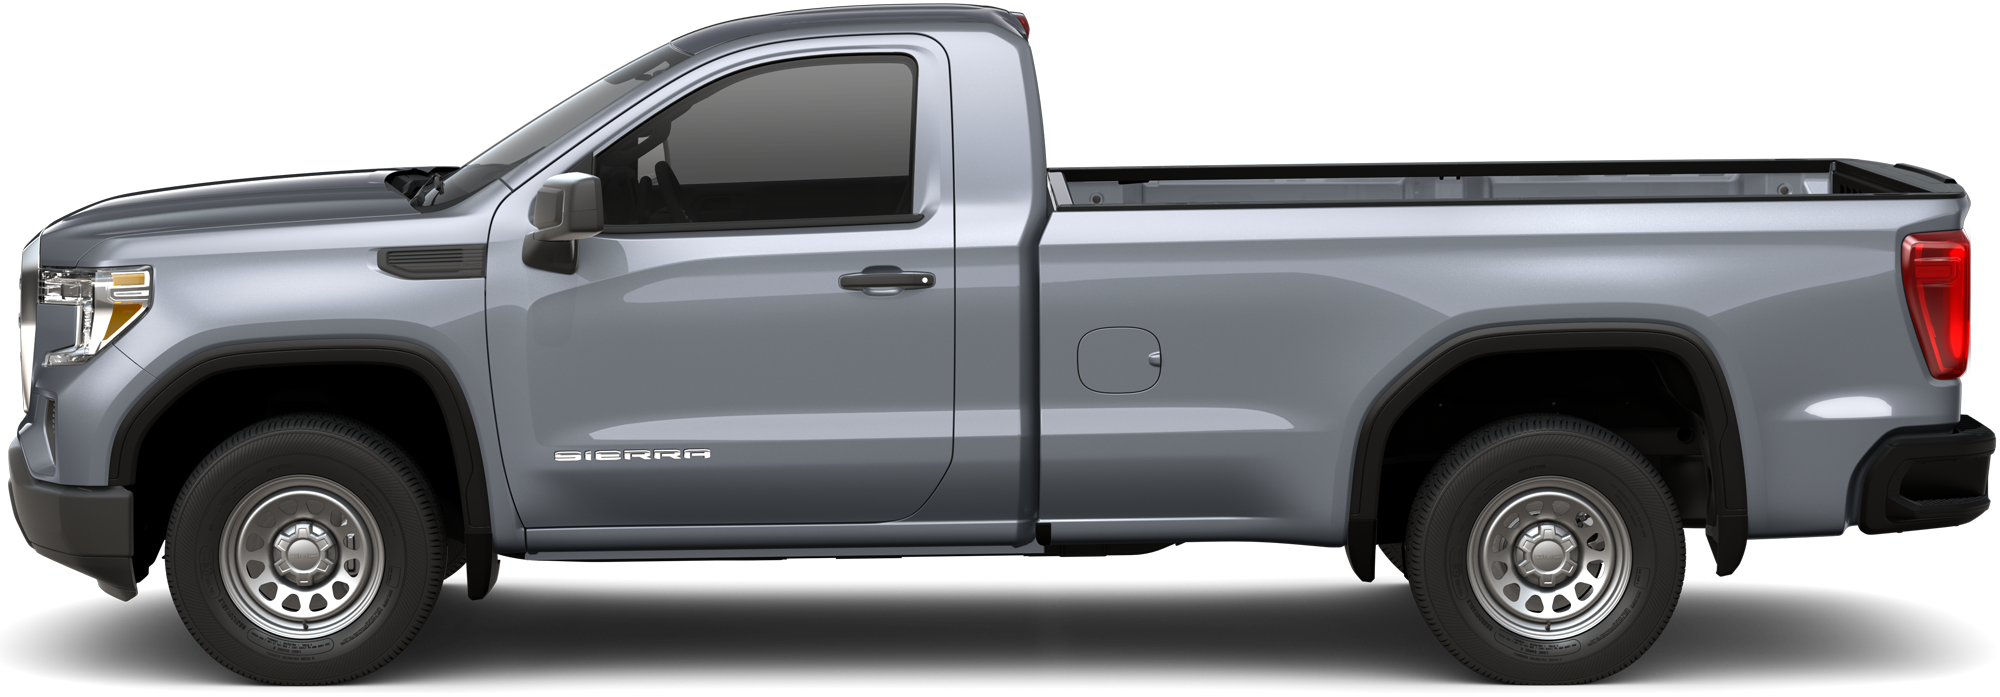 2020 GMC Sierra 1500 Truck Base